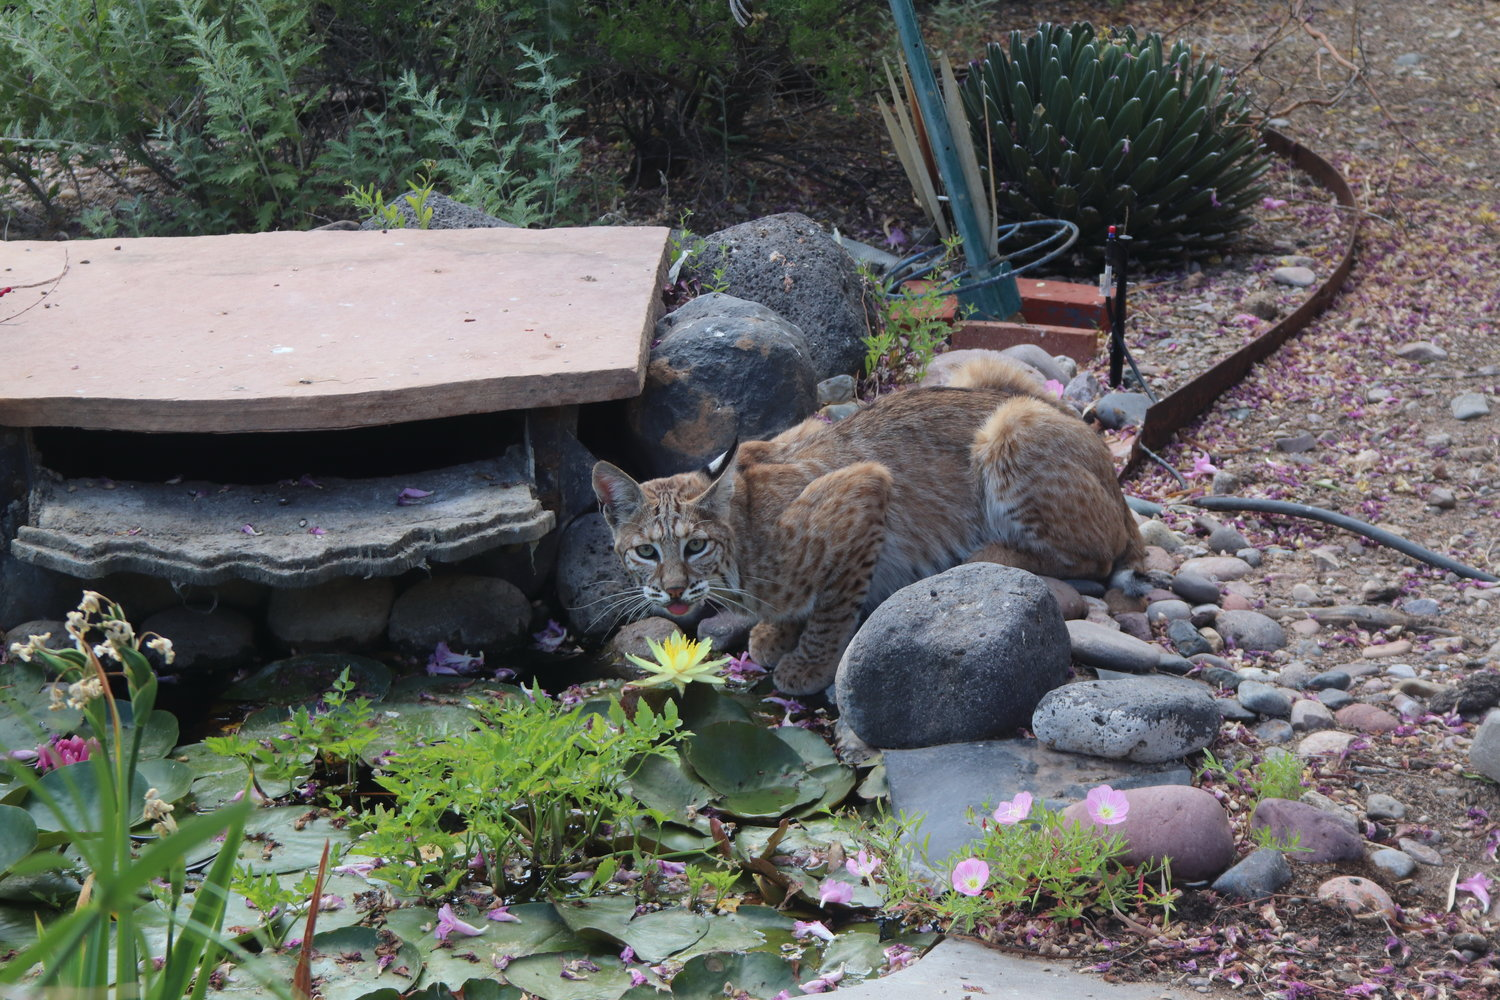 A visiting bobcat grabs a drink from a water feature at the Burr home in Las Cruces. Bobcats, javelina and other wildlife are venturing into residential areas around Las Cruces to escape the heat and seek easy prey.